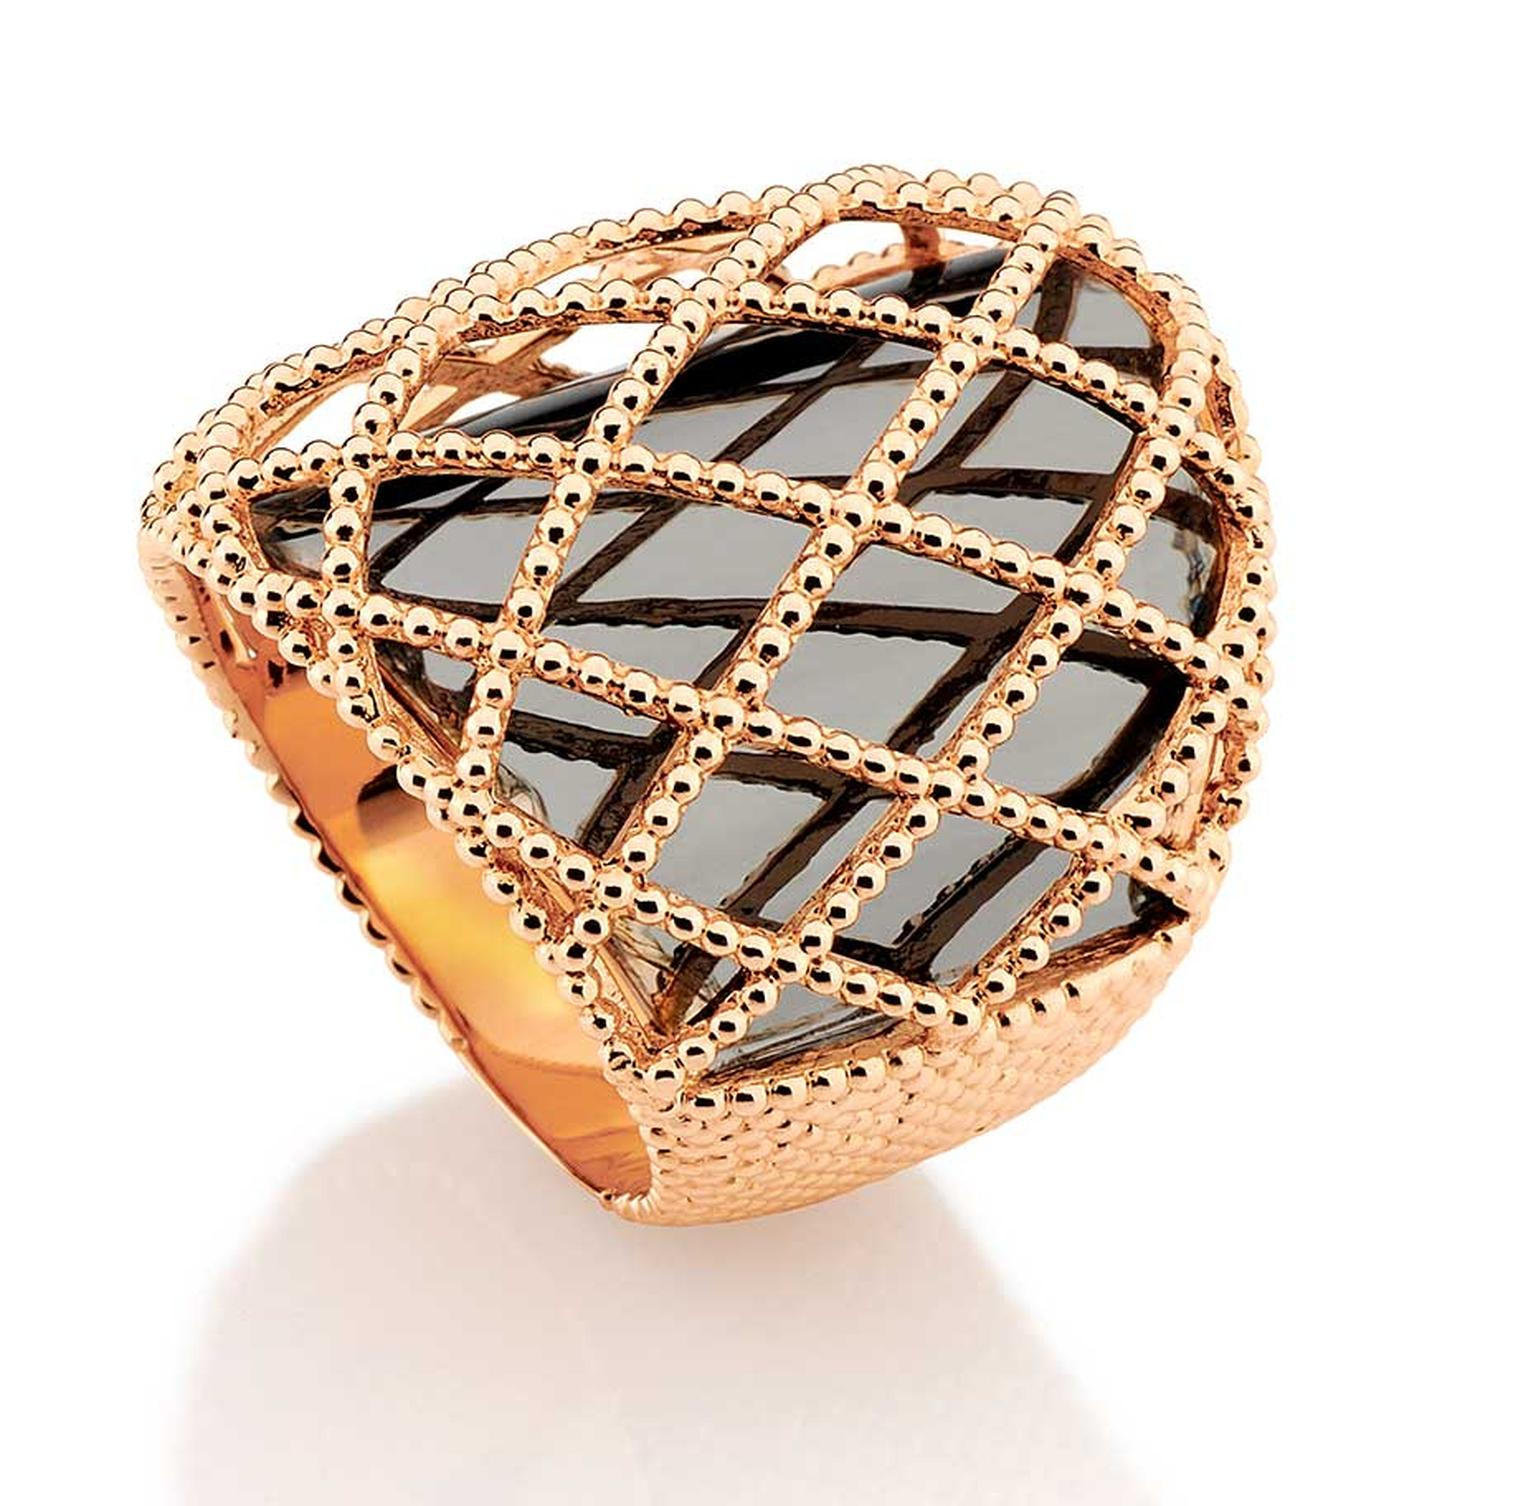 Carla Amorim Russia Collection Chapel ring, inspired by the domes of St Basil's Cathedral in Moscow's Red Square